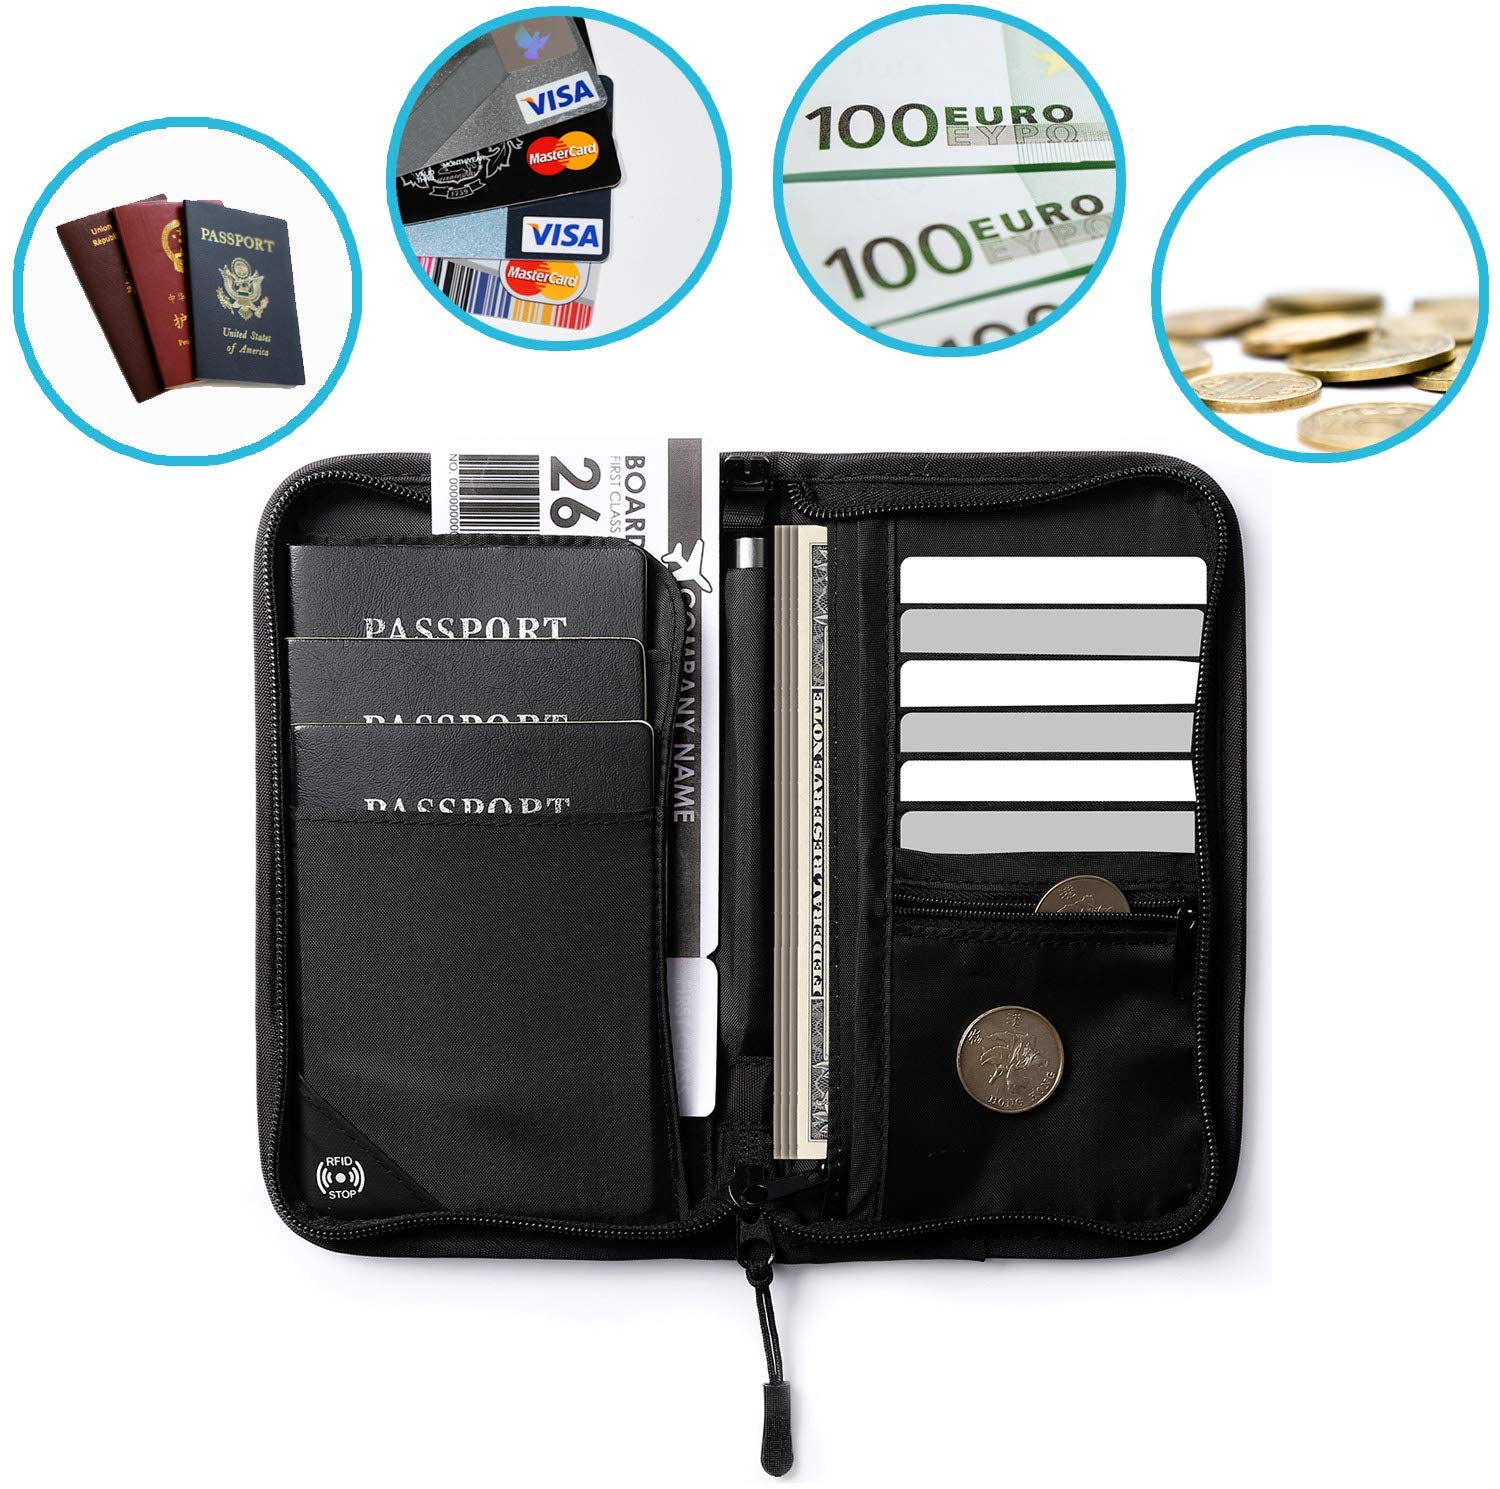 Family Passport Holder Document Organizer Waterproof RFID Blocking Travel Wallet